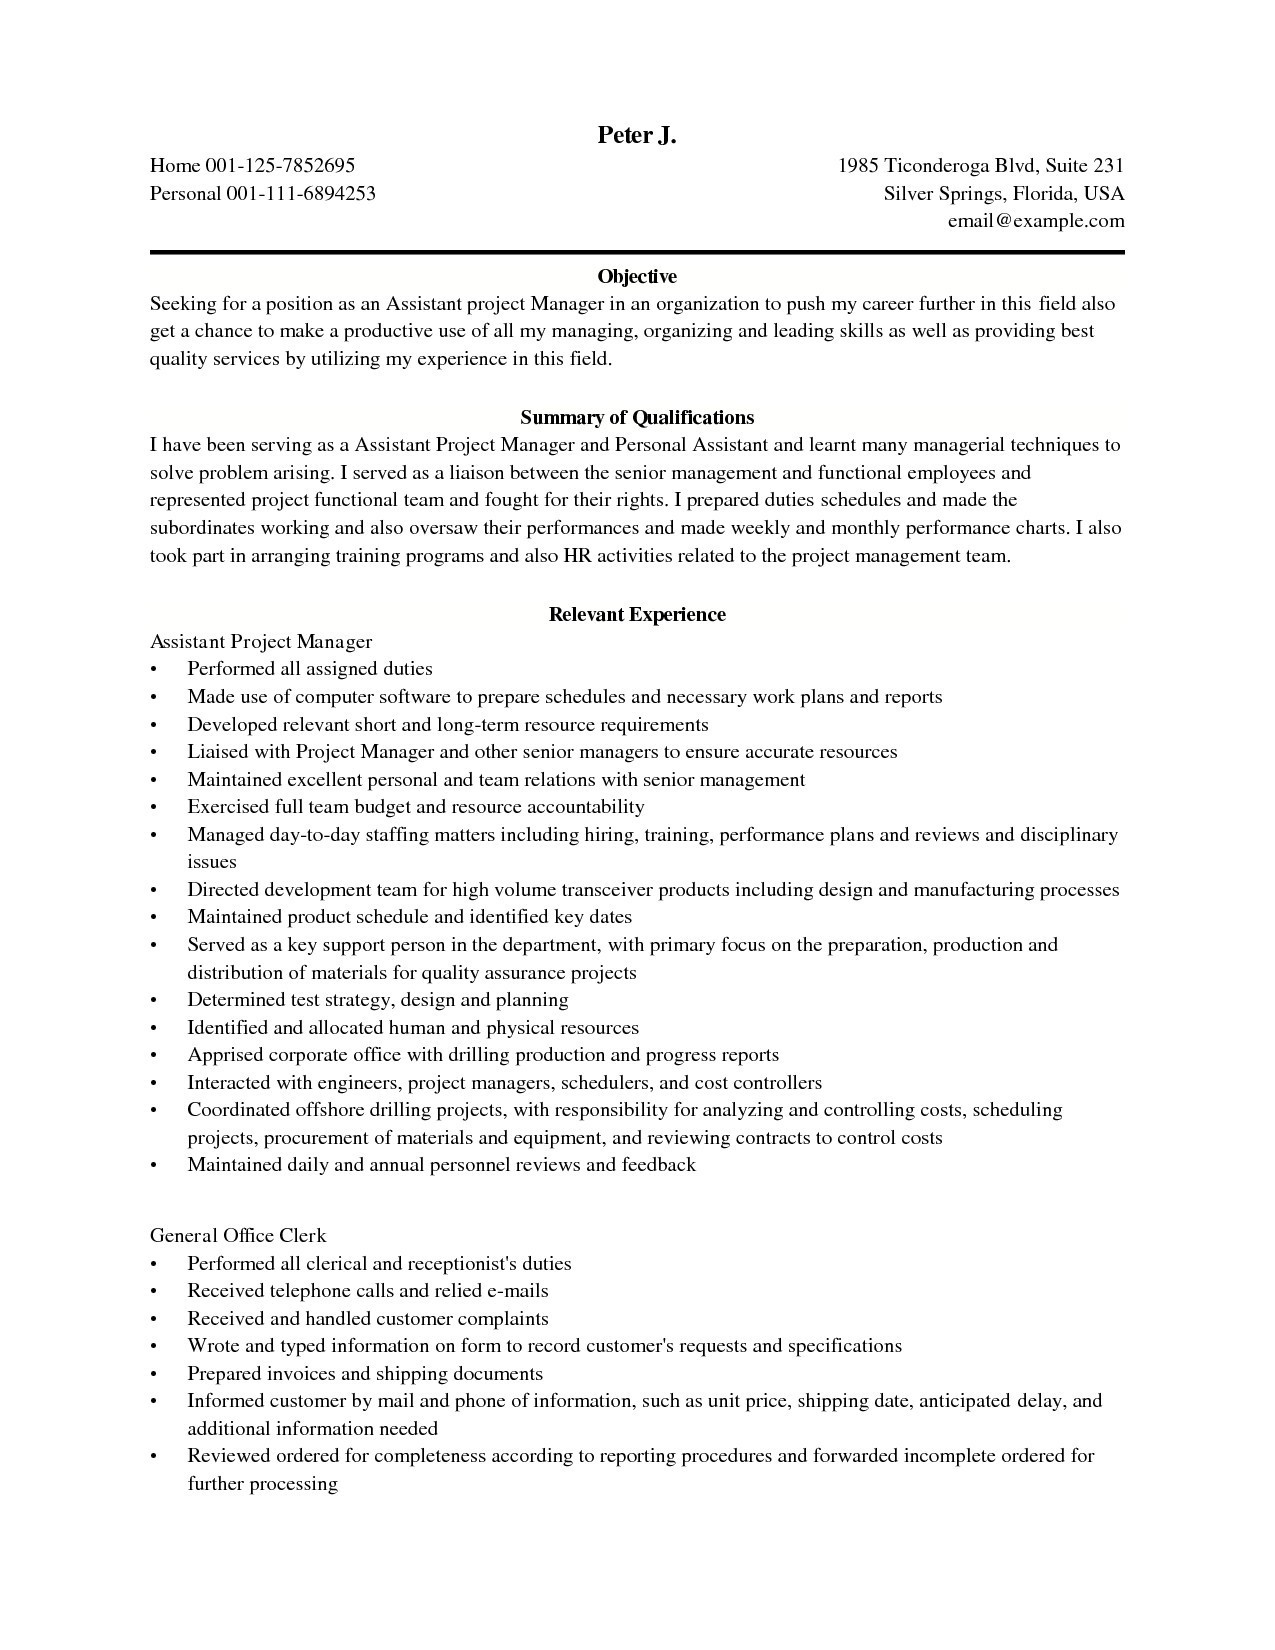 Sample Resume for Project Manager Position - Project Manager Sample Resume New Awesome Elegant Grapher Resume